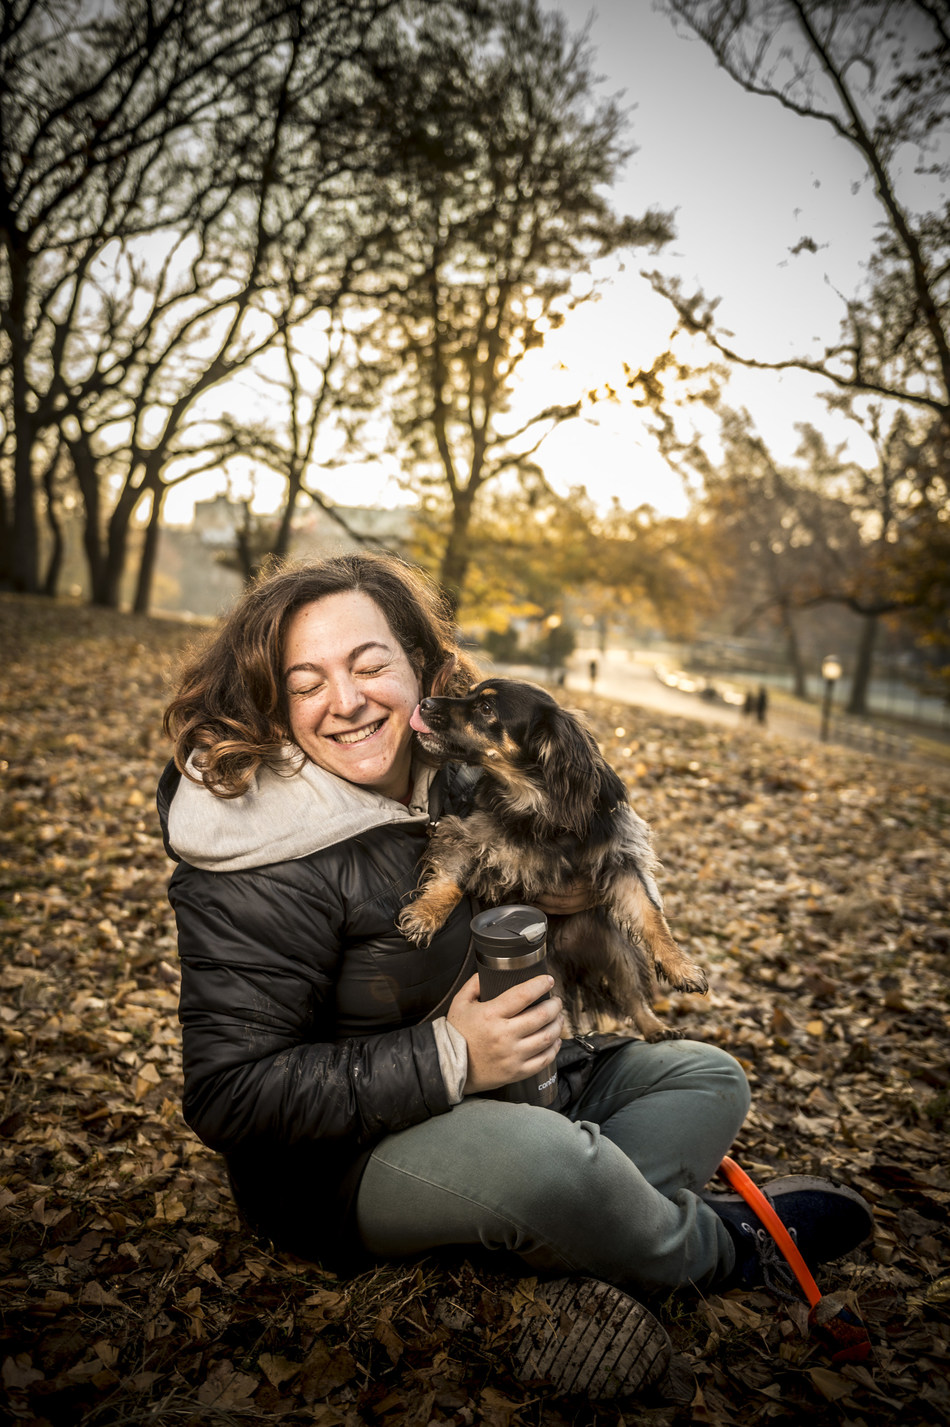 Molly's doctor suggested she get a dog to help her combat the symptoms of depression. When she spotted Frank Jr. Jr. bounding around the corner the first time they met, she knew he was just what the doctor had ordered! Molly's story illustrates the life-changing power of pets.